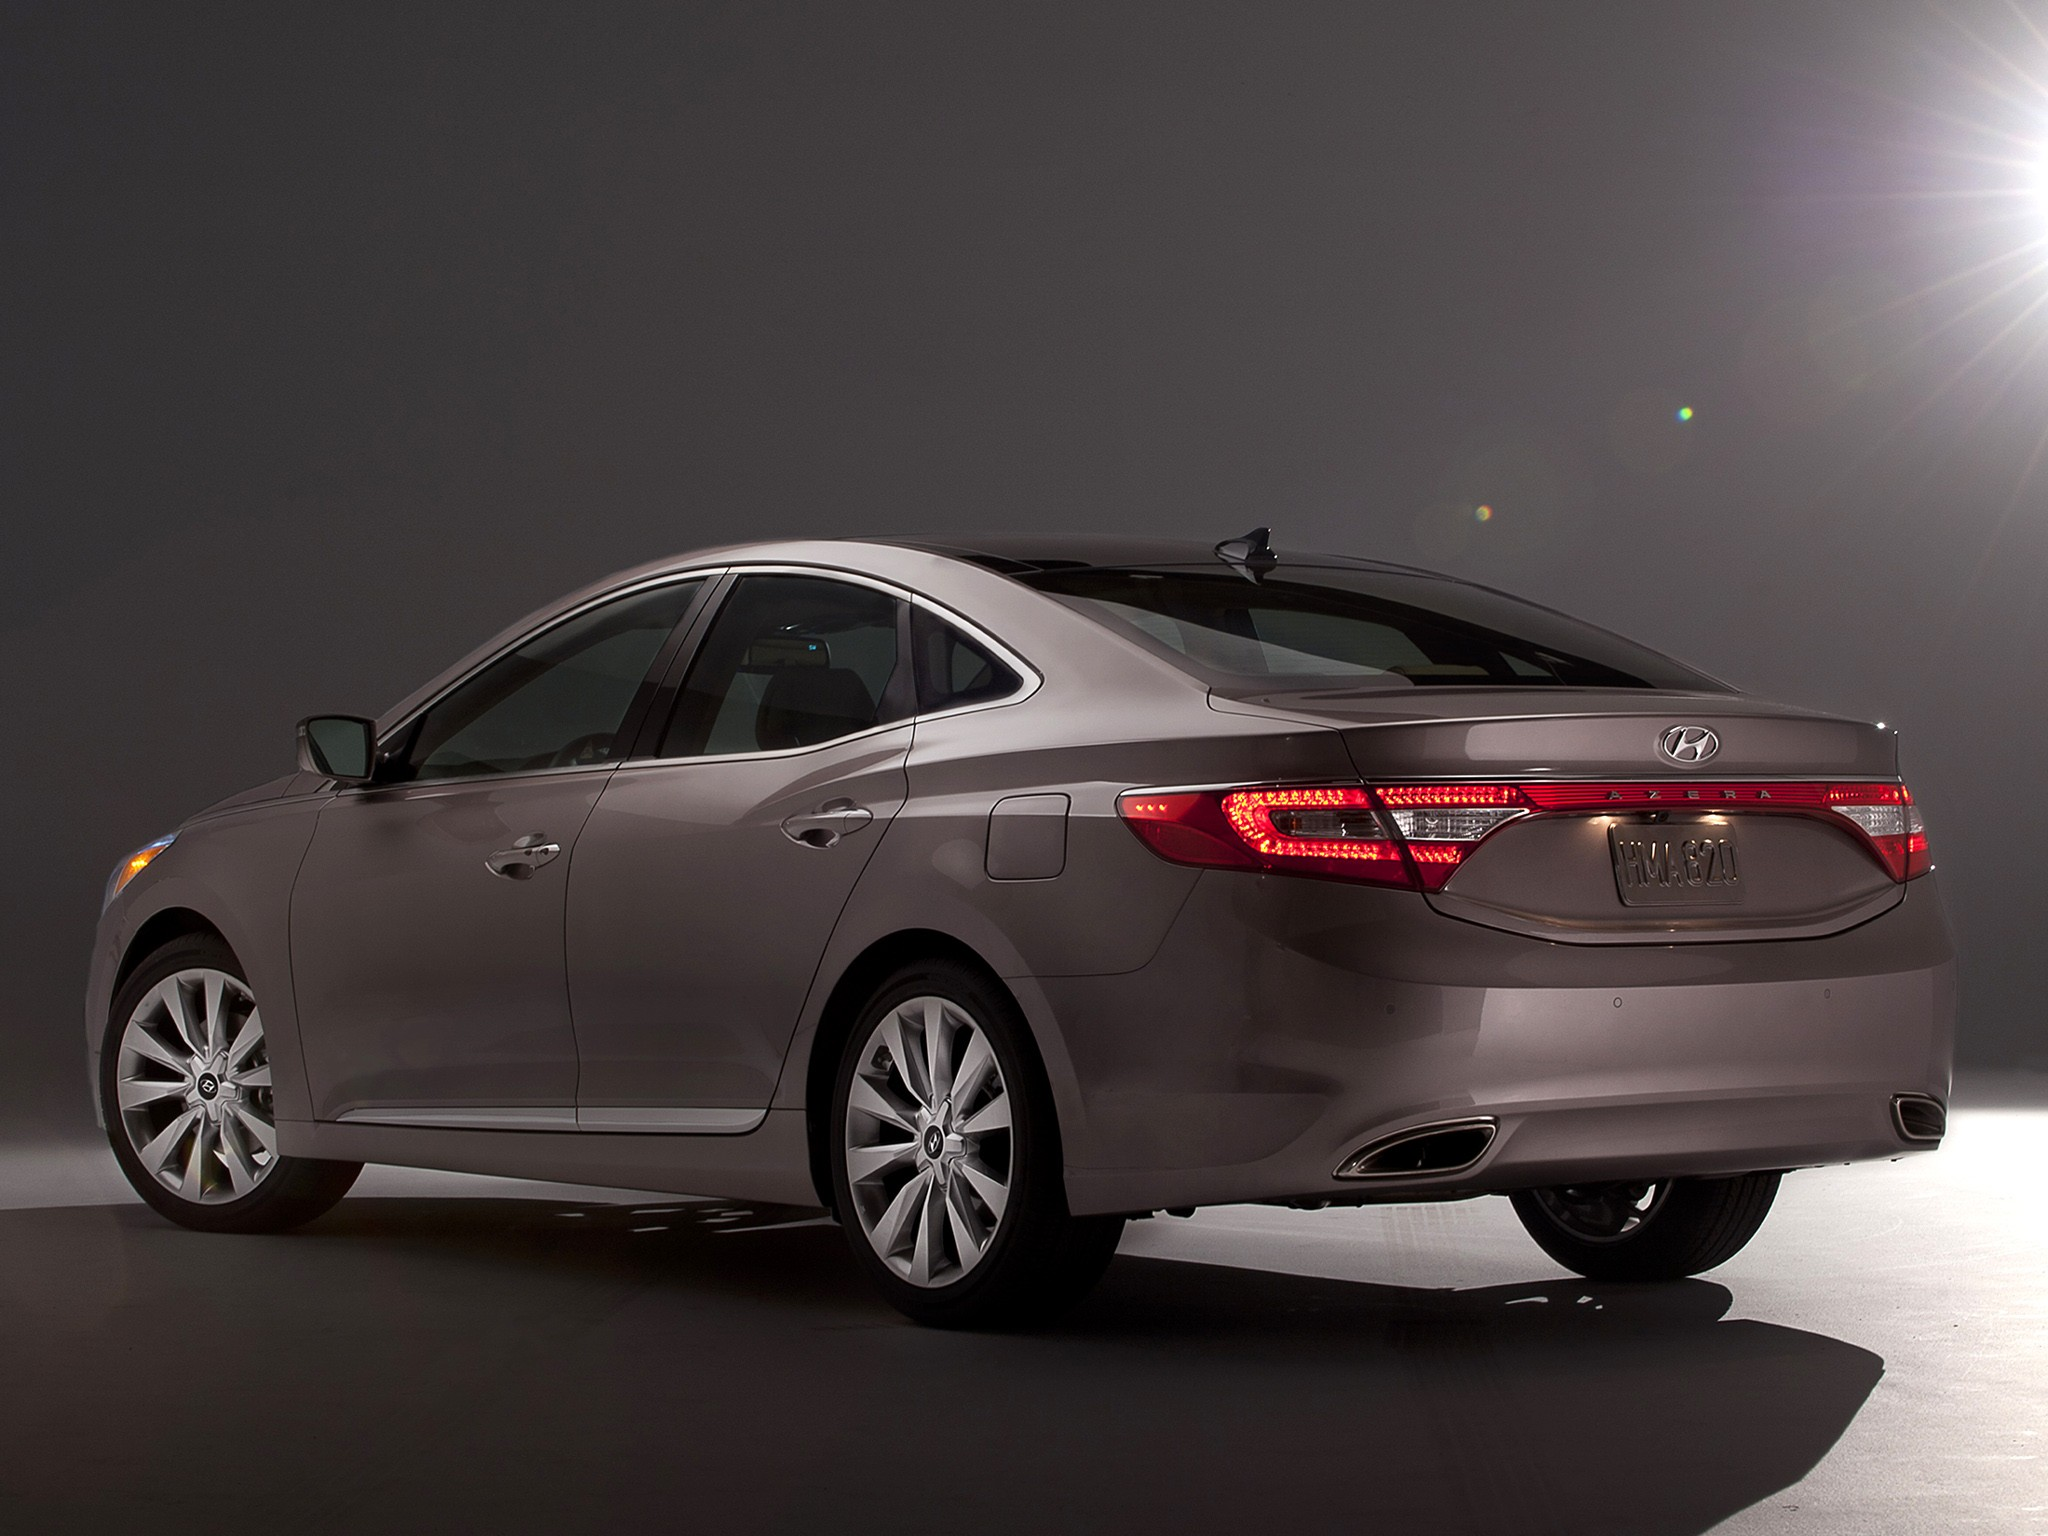 arabia drive revealed tag in korea as news azera grandeur hyundai